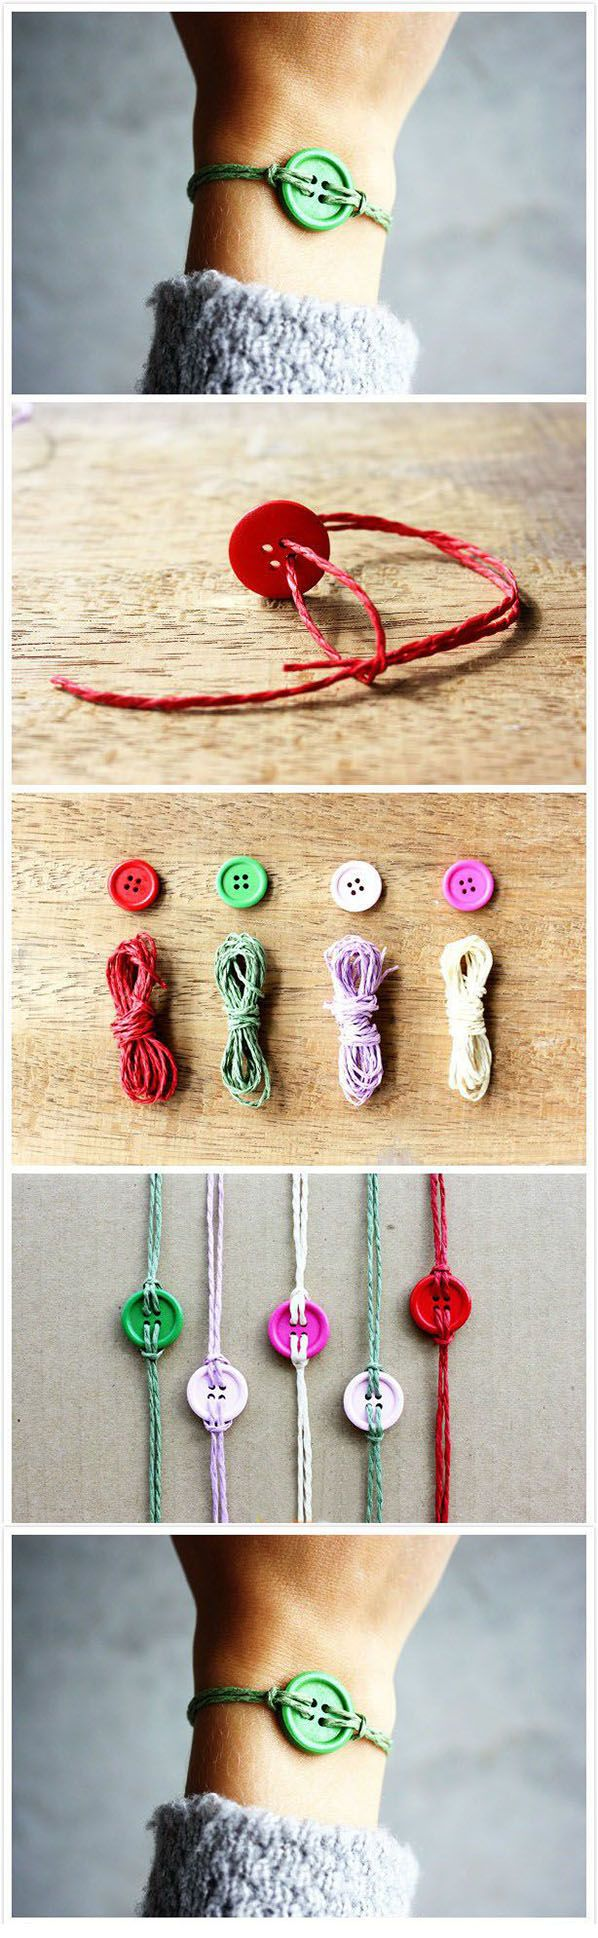 Cool Button Bracelet | DIY & Crafts Tutorials